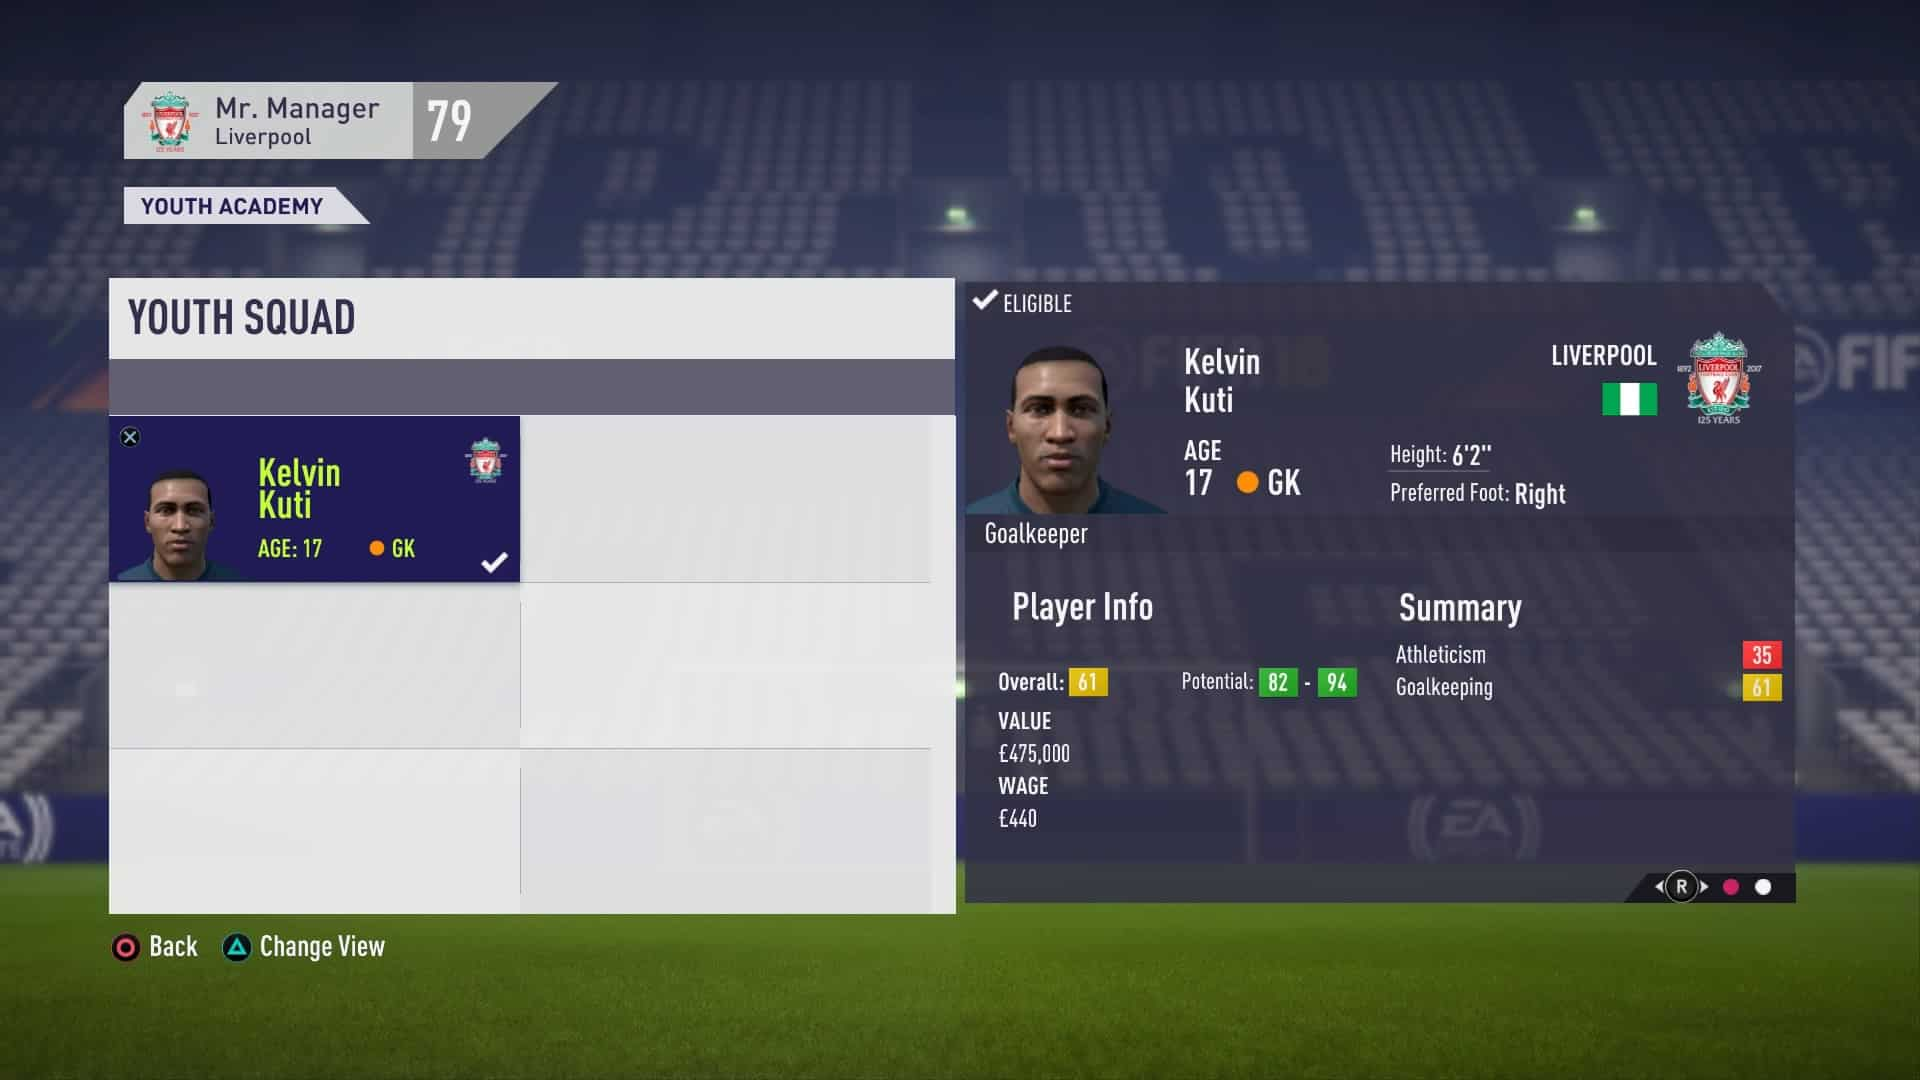 Youth Squad Player View